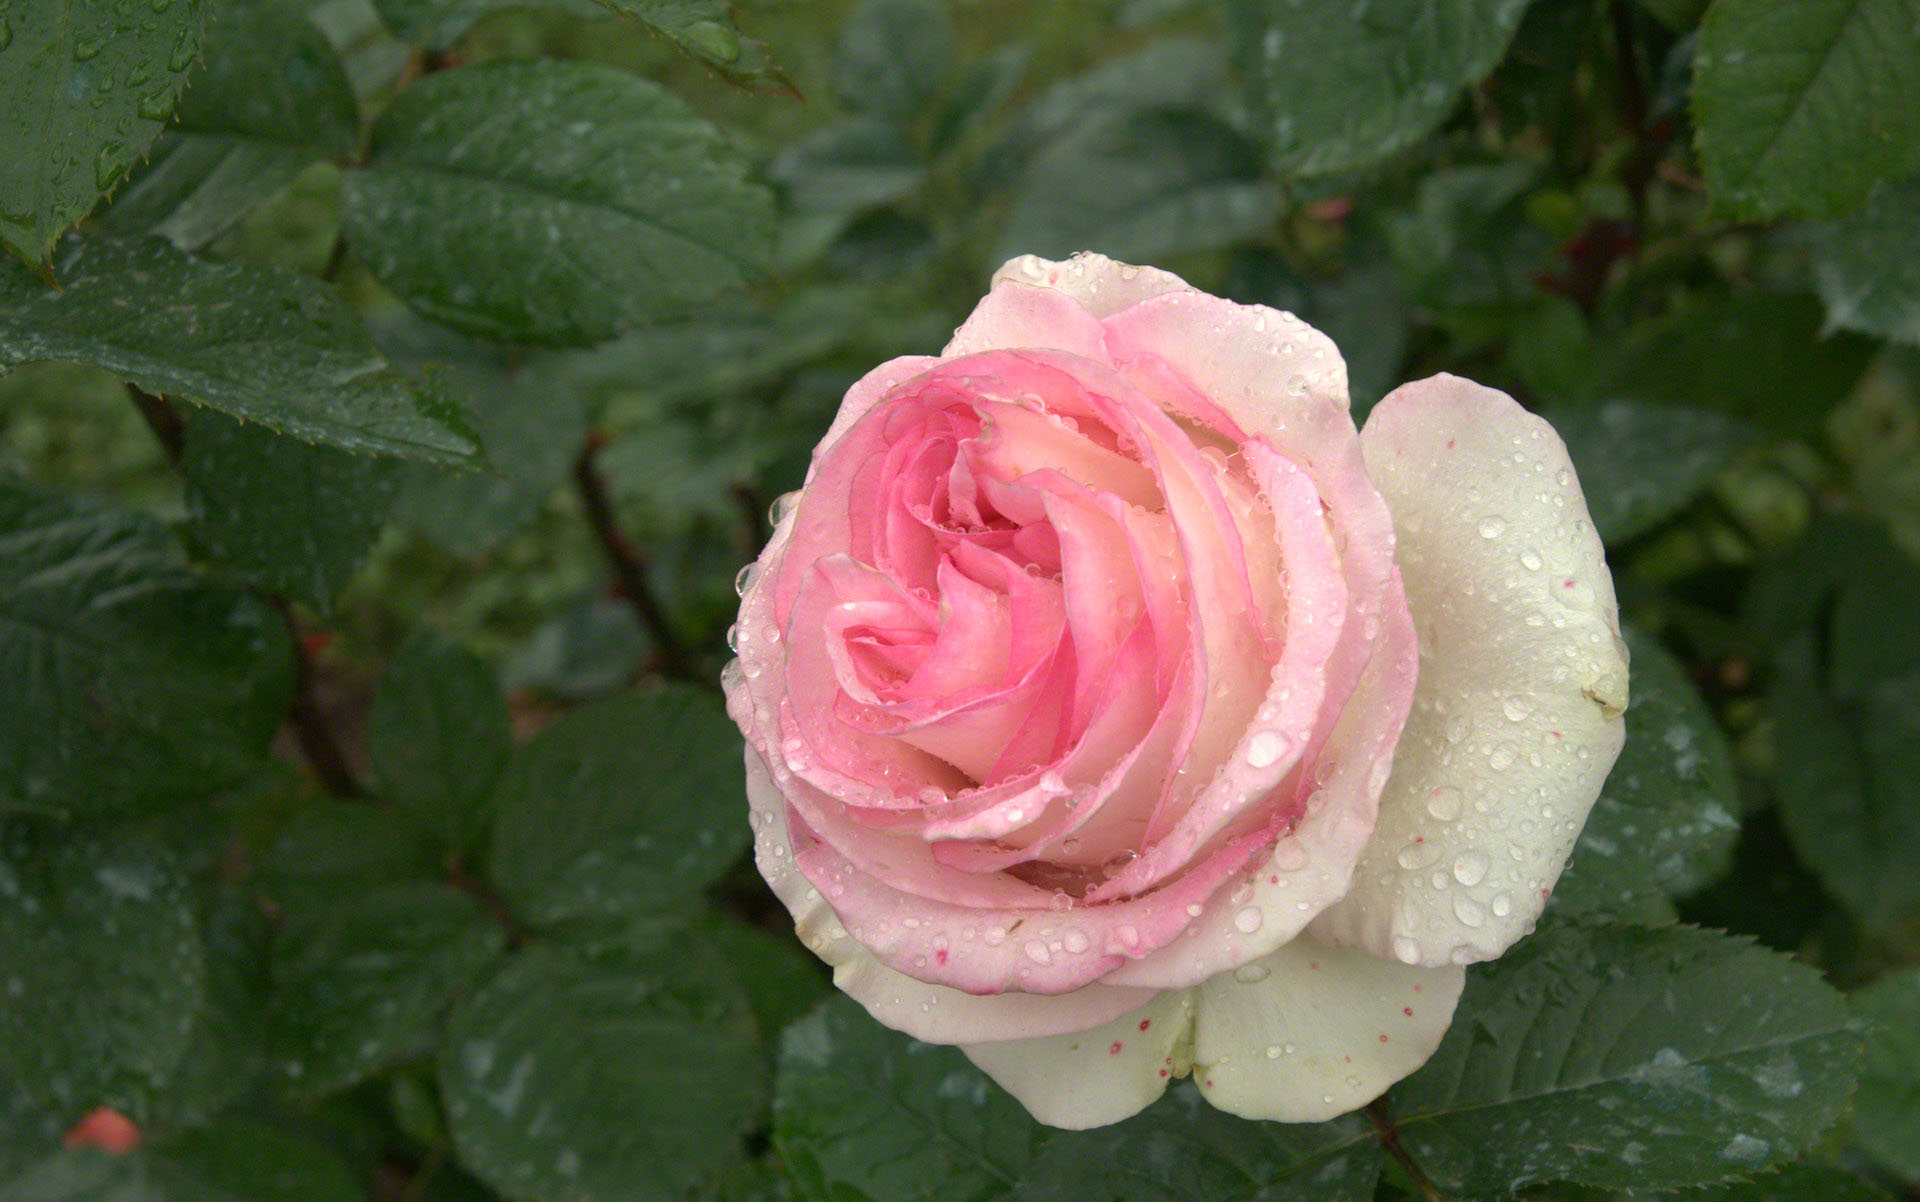 http://www.fabiovisentin.com/photography/photo/12/raindrop-pink-white-rose-dsc04420.jpg